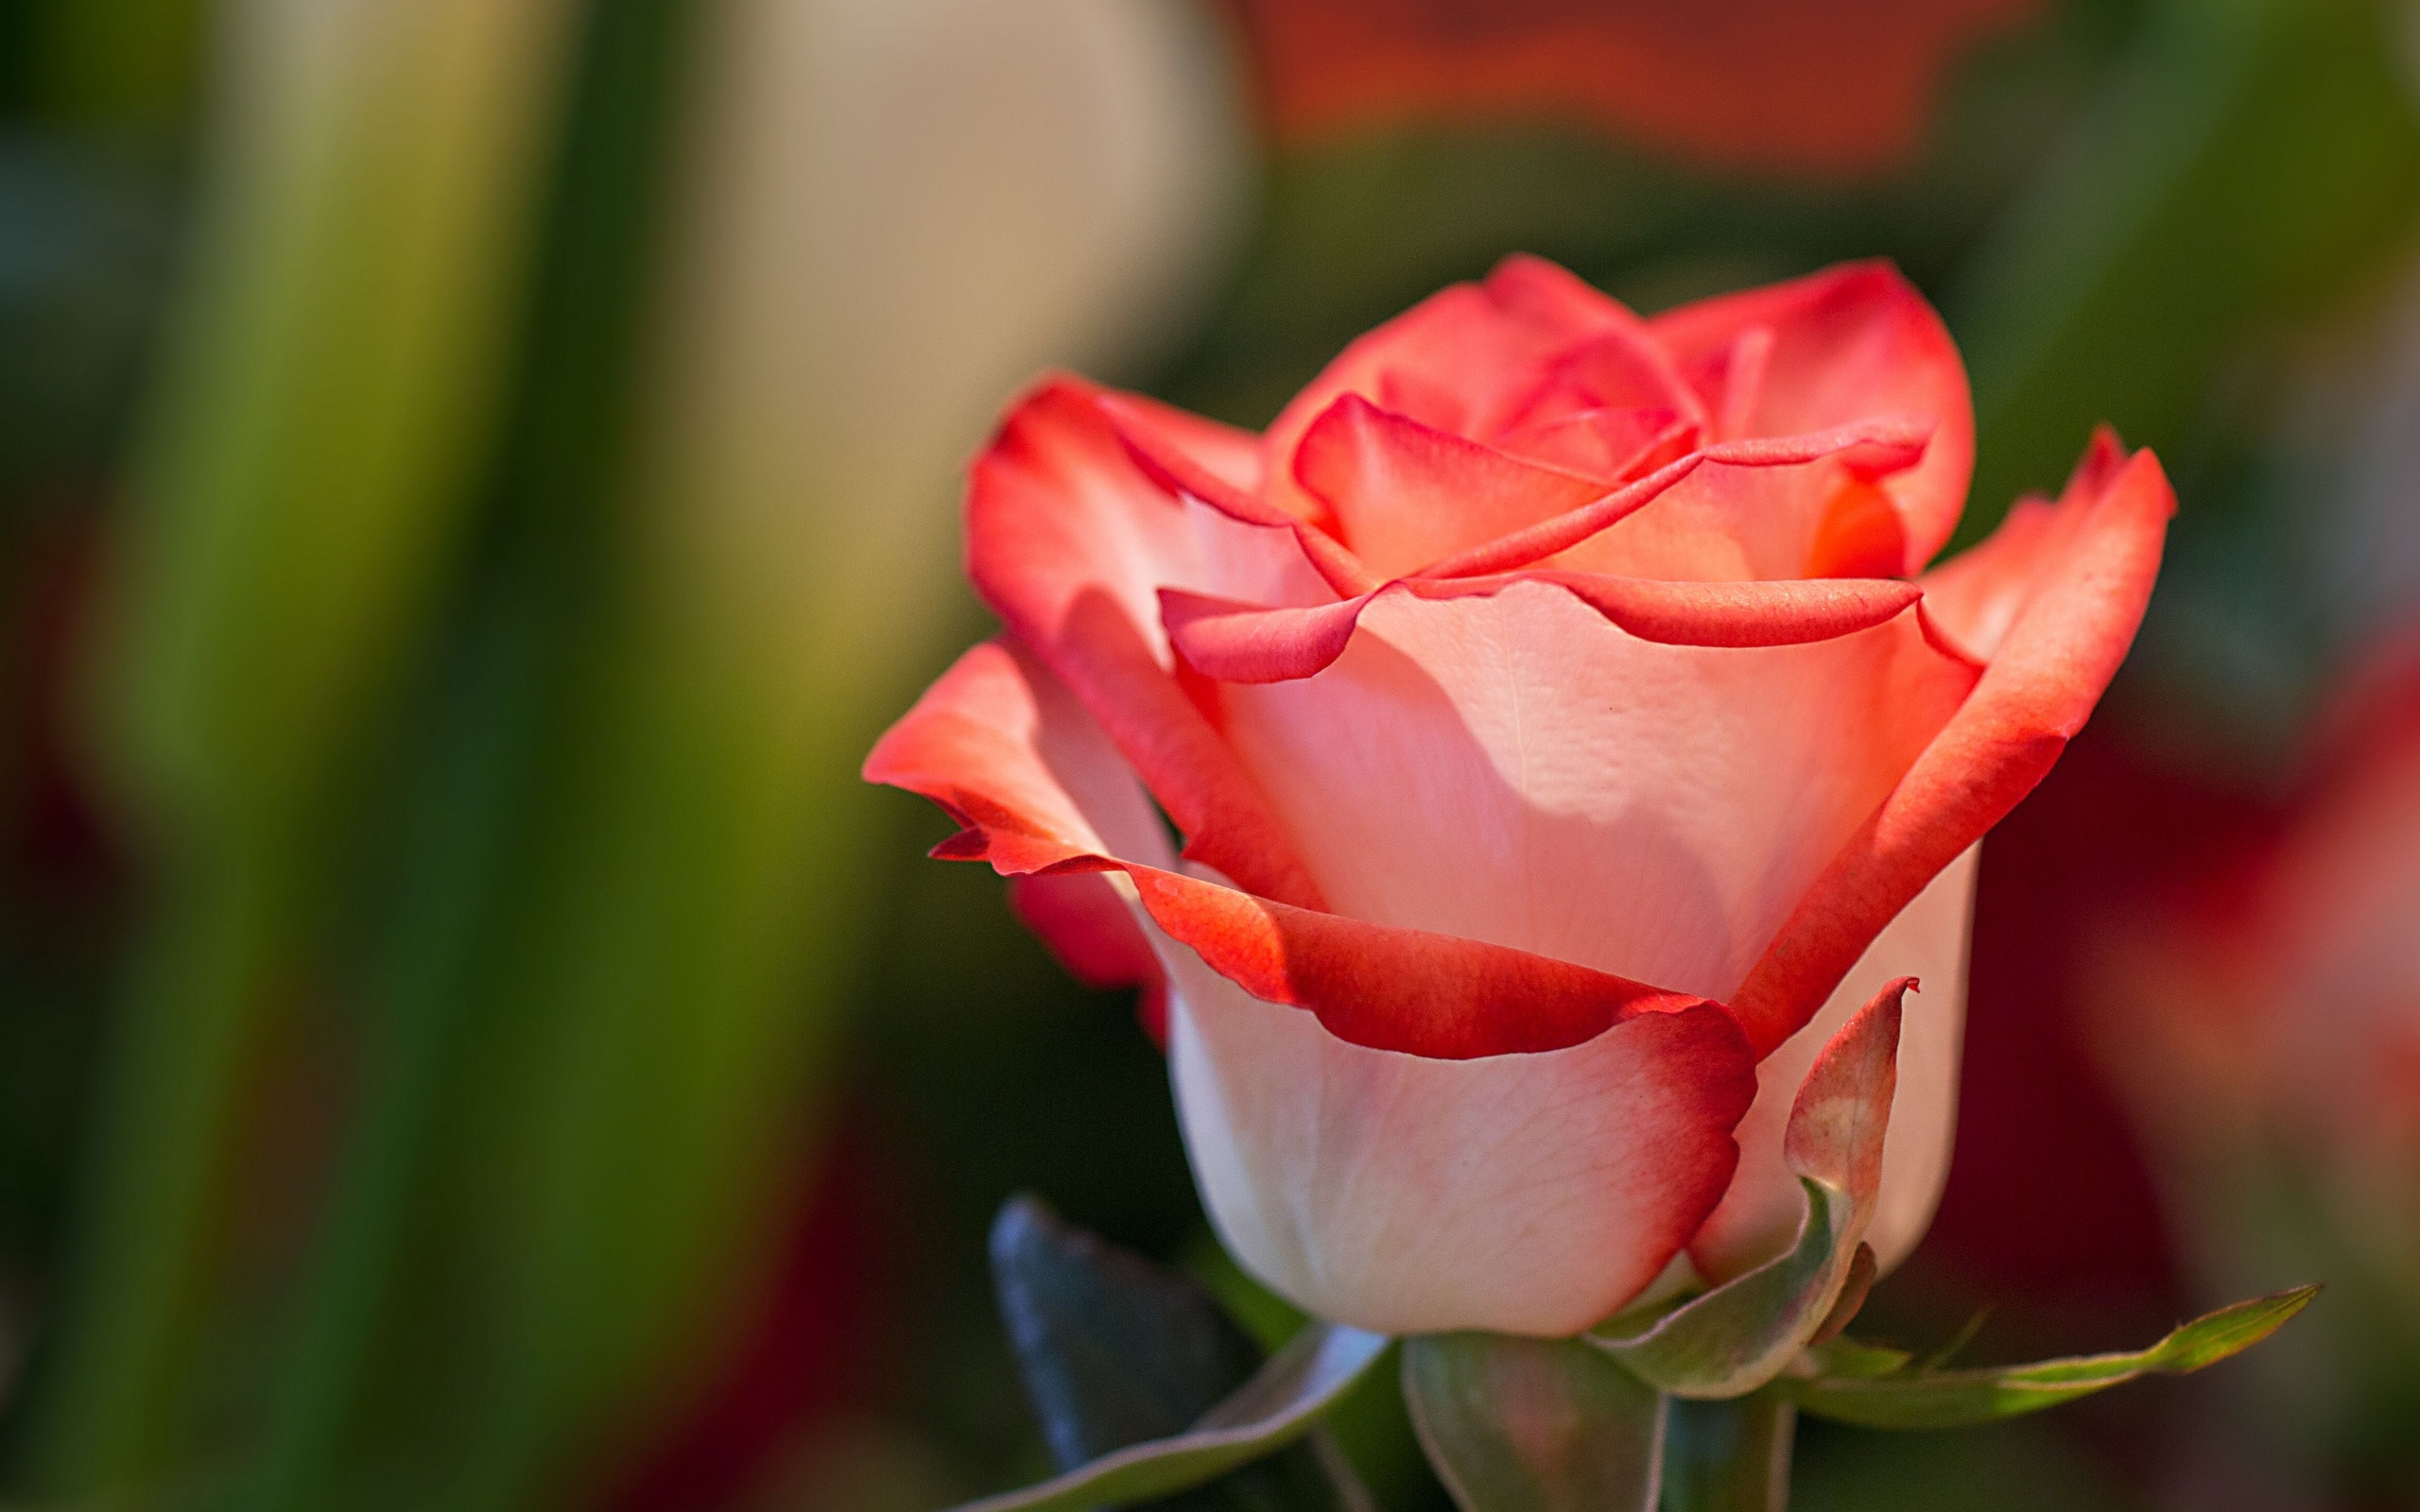 rose full hd wallpaper and background image | 2560x1600 | id:404646